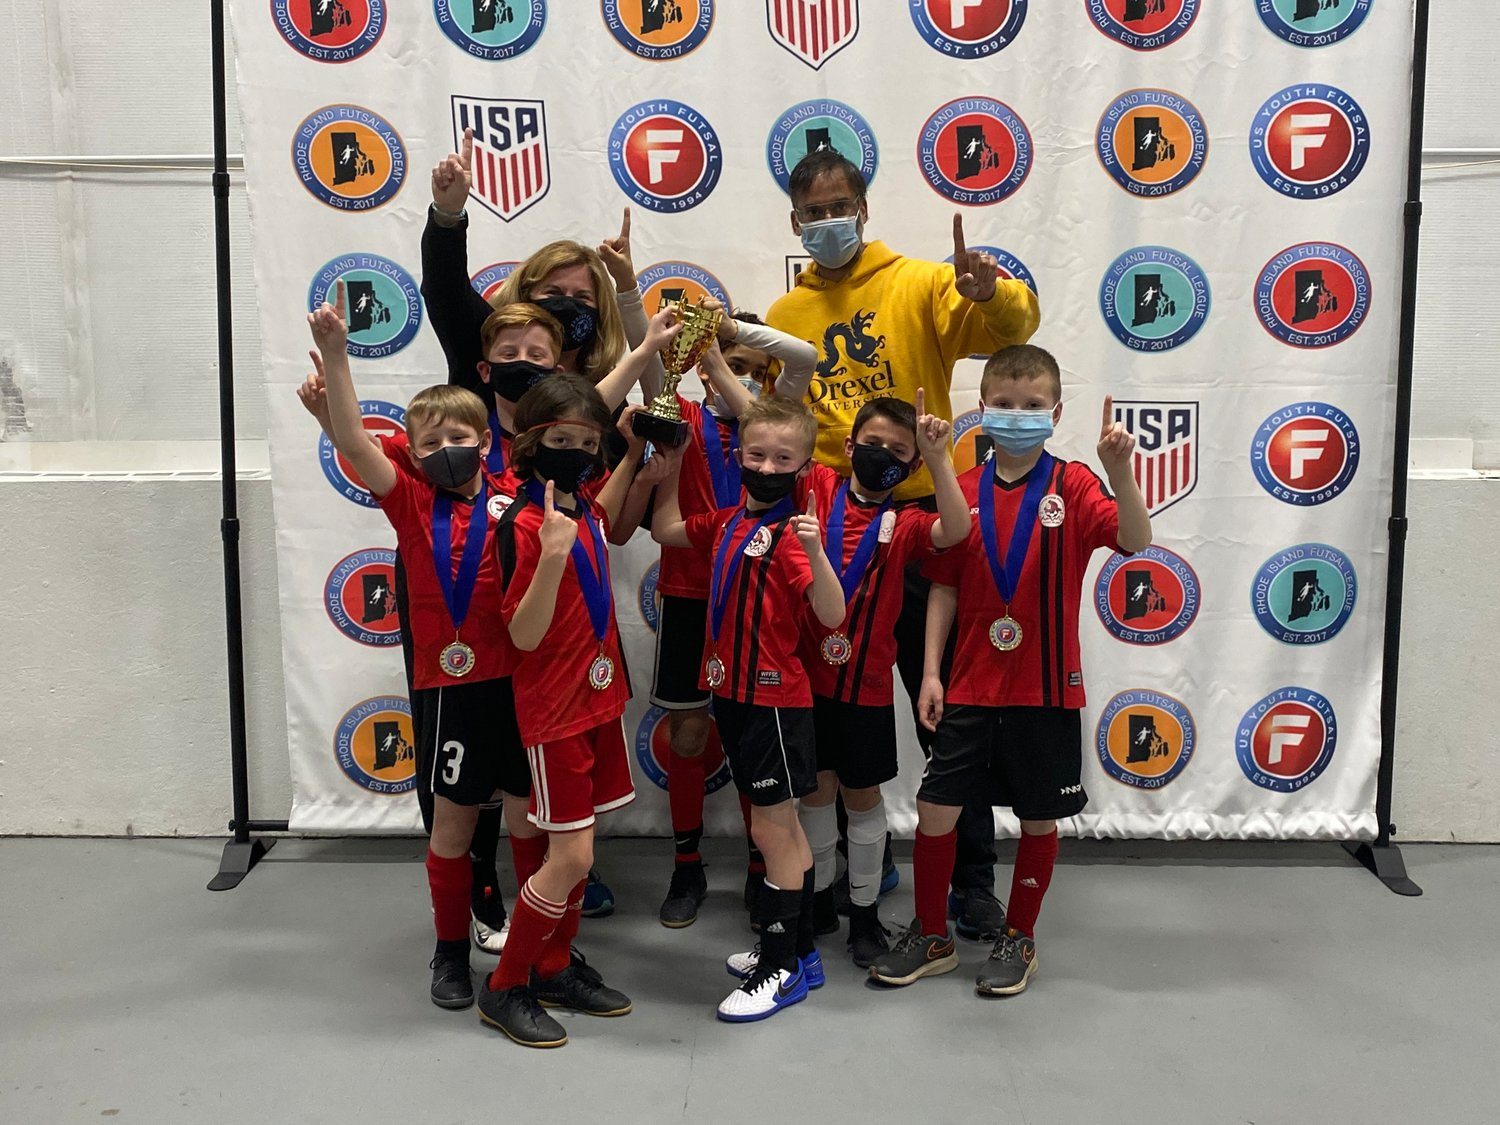 Rumford resident Sean Masse and his teammates are all smiles after receiving medals at the Rhode Island Futsal League championship games.